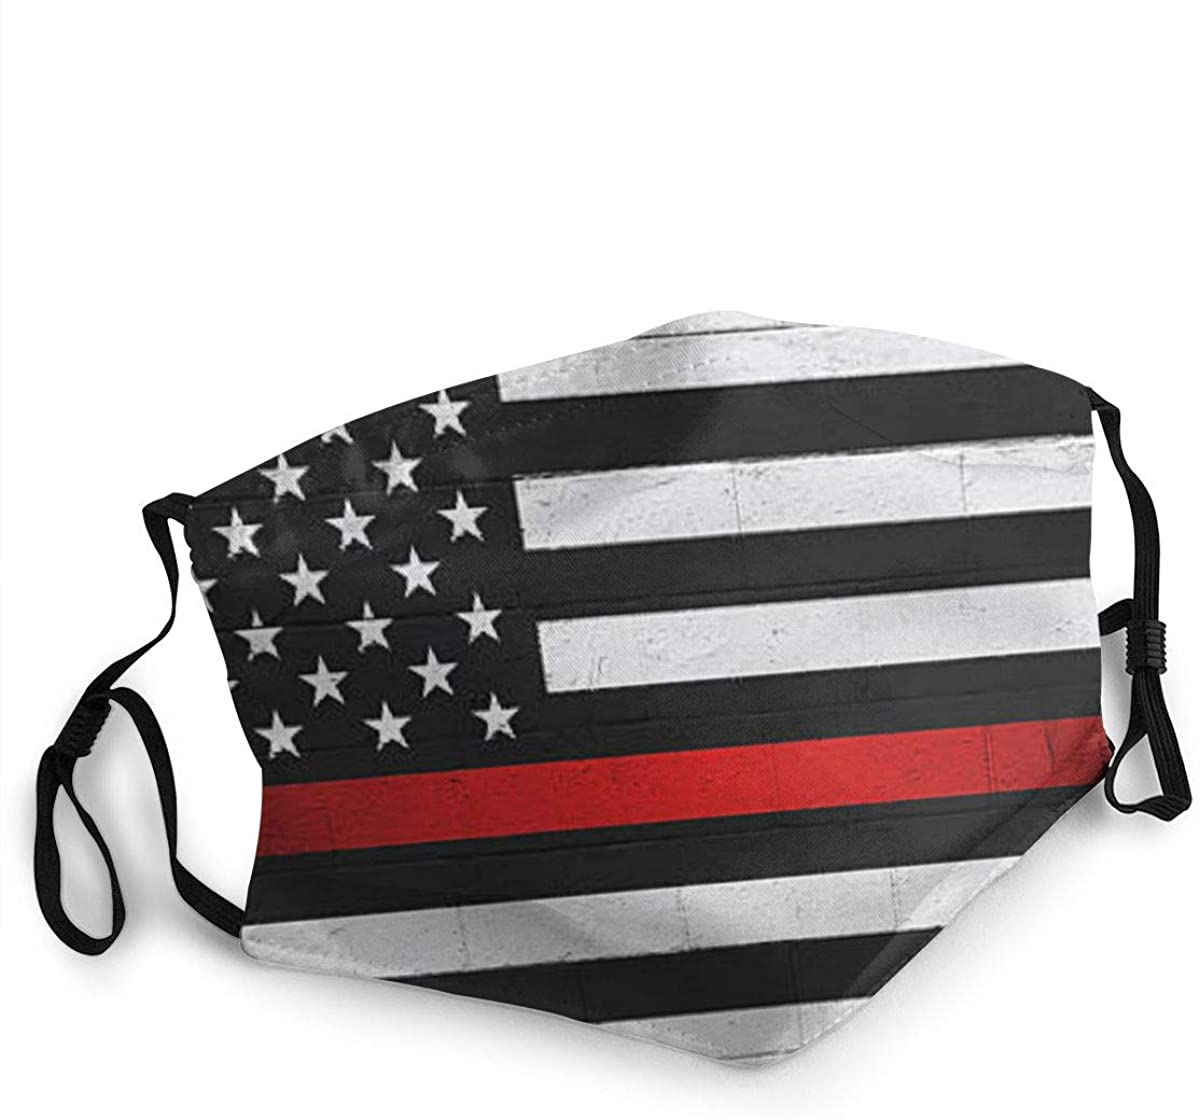 Fashion Protective Face Masks, Black and White American Flag Unisex Dust Mouth Masks, Washable, Reusable Masks